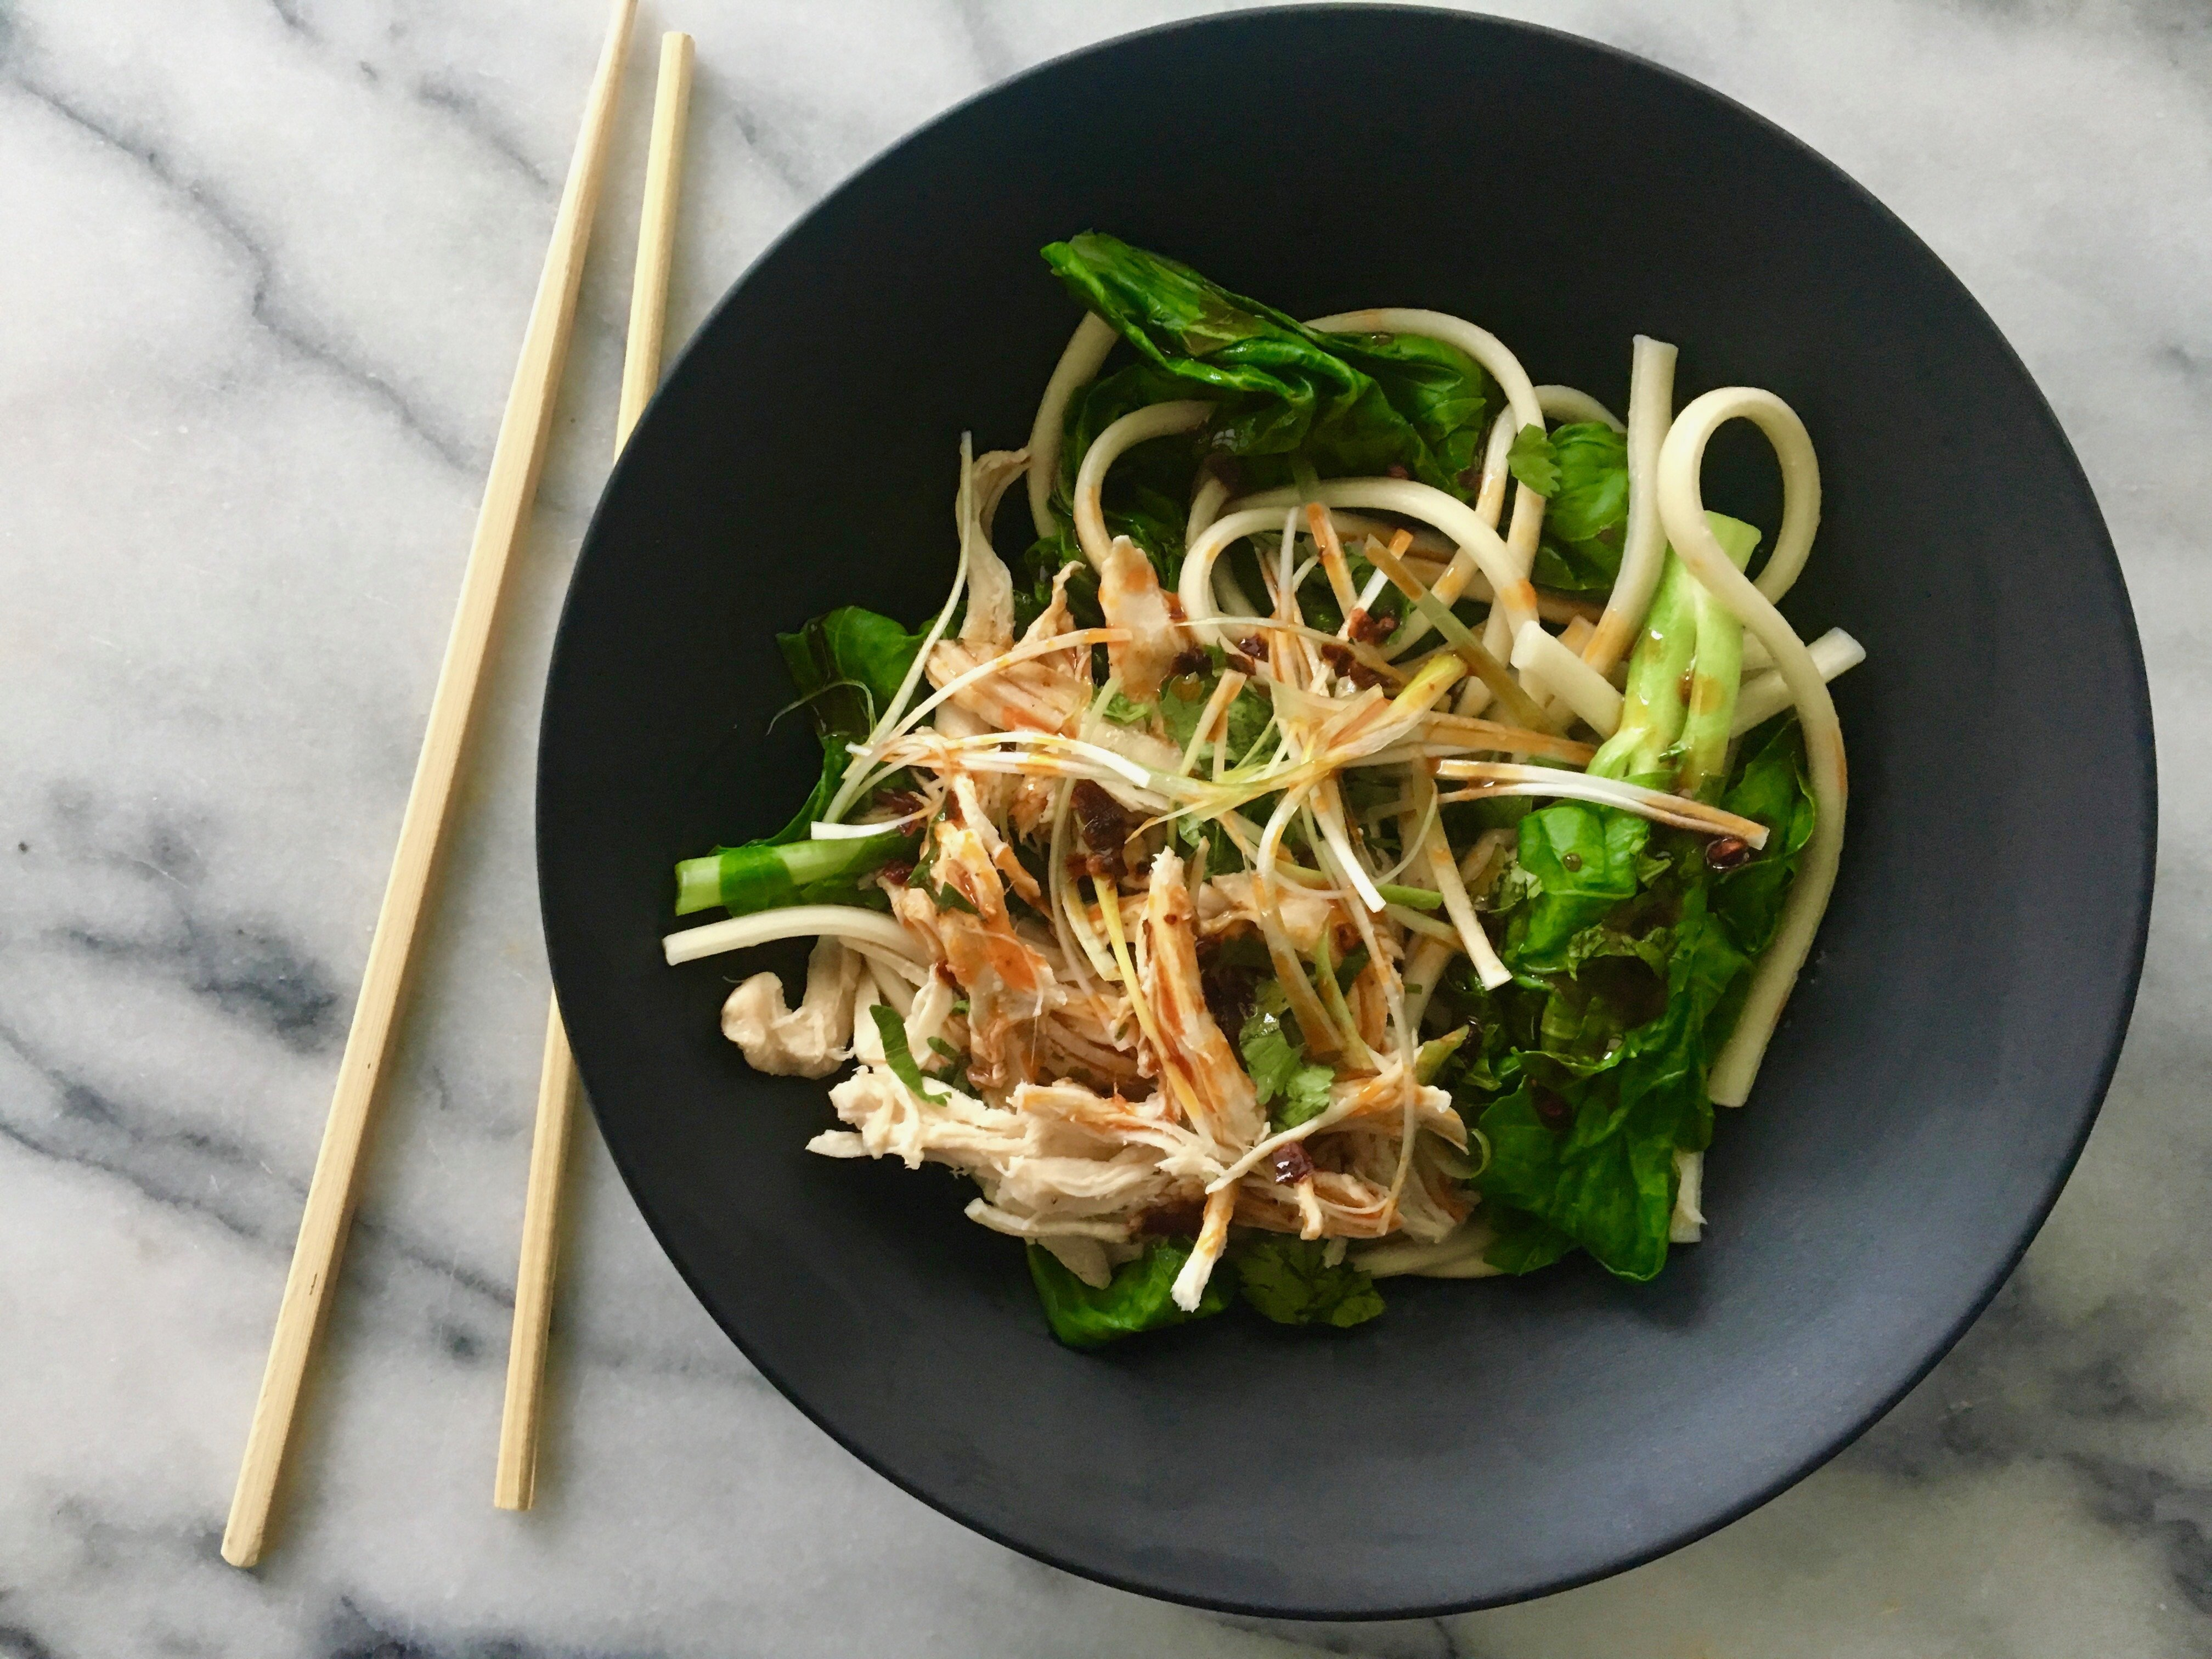 This easy dinner idea combines rotisserie chicken, fresh veggies and udon noodles. (Photo: A Little Yumminess)